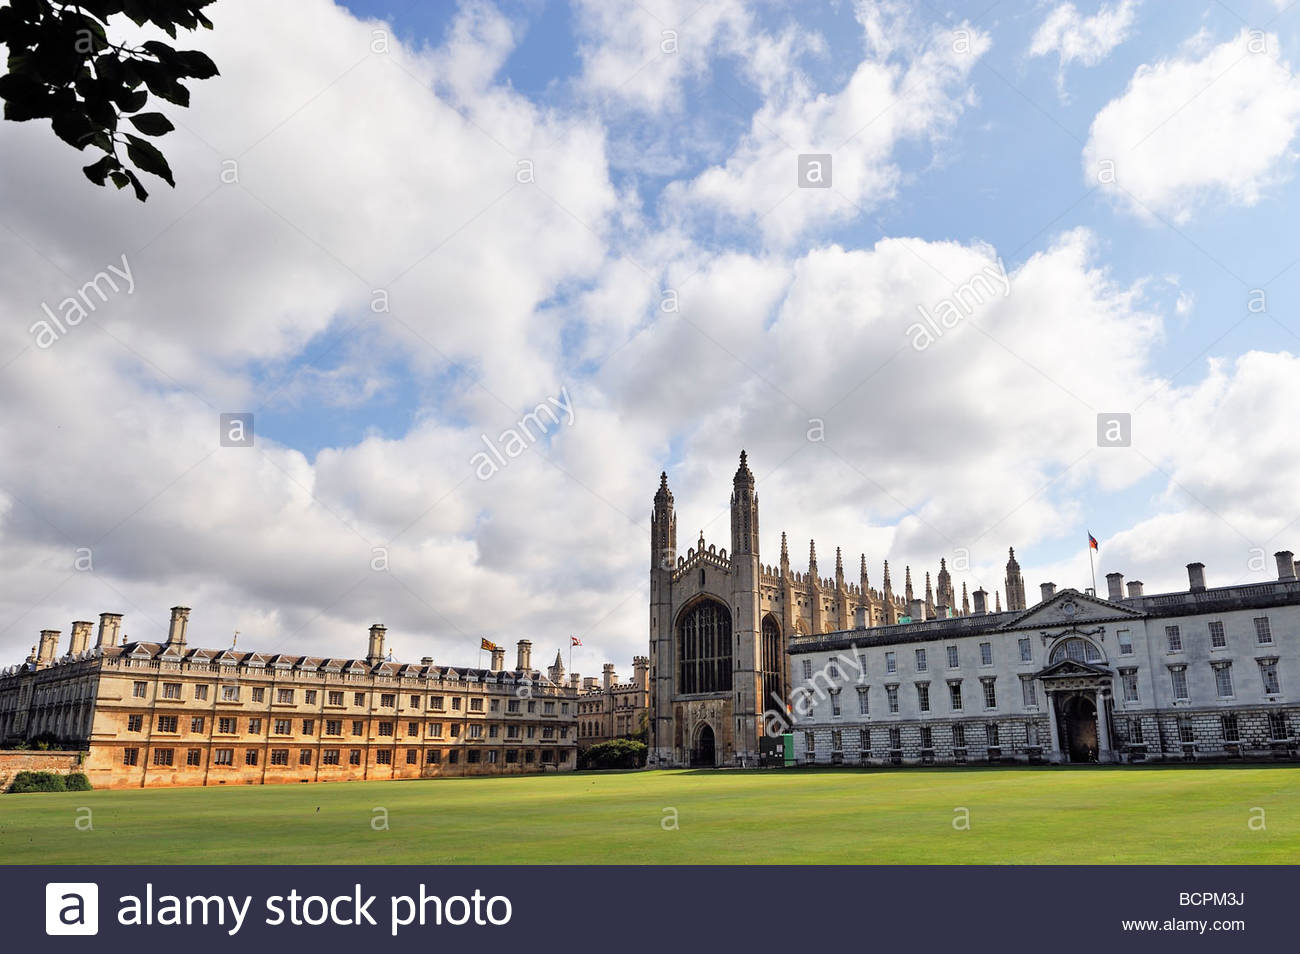 Kings College at Cambridge - Stock Image